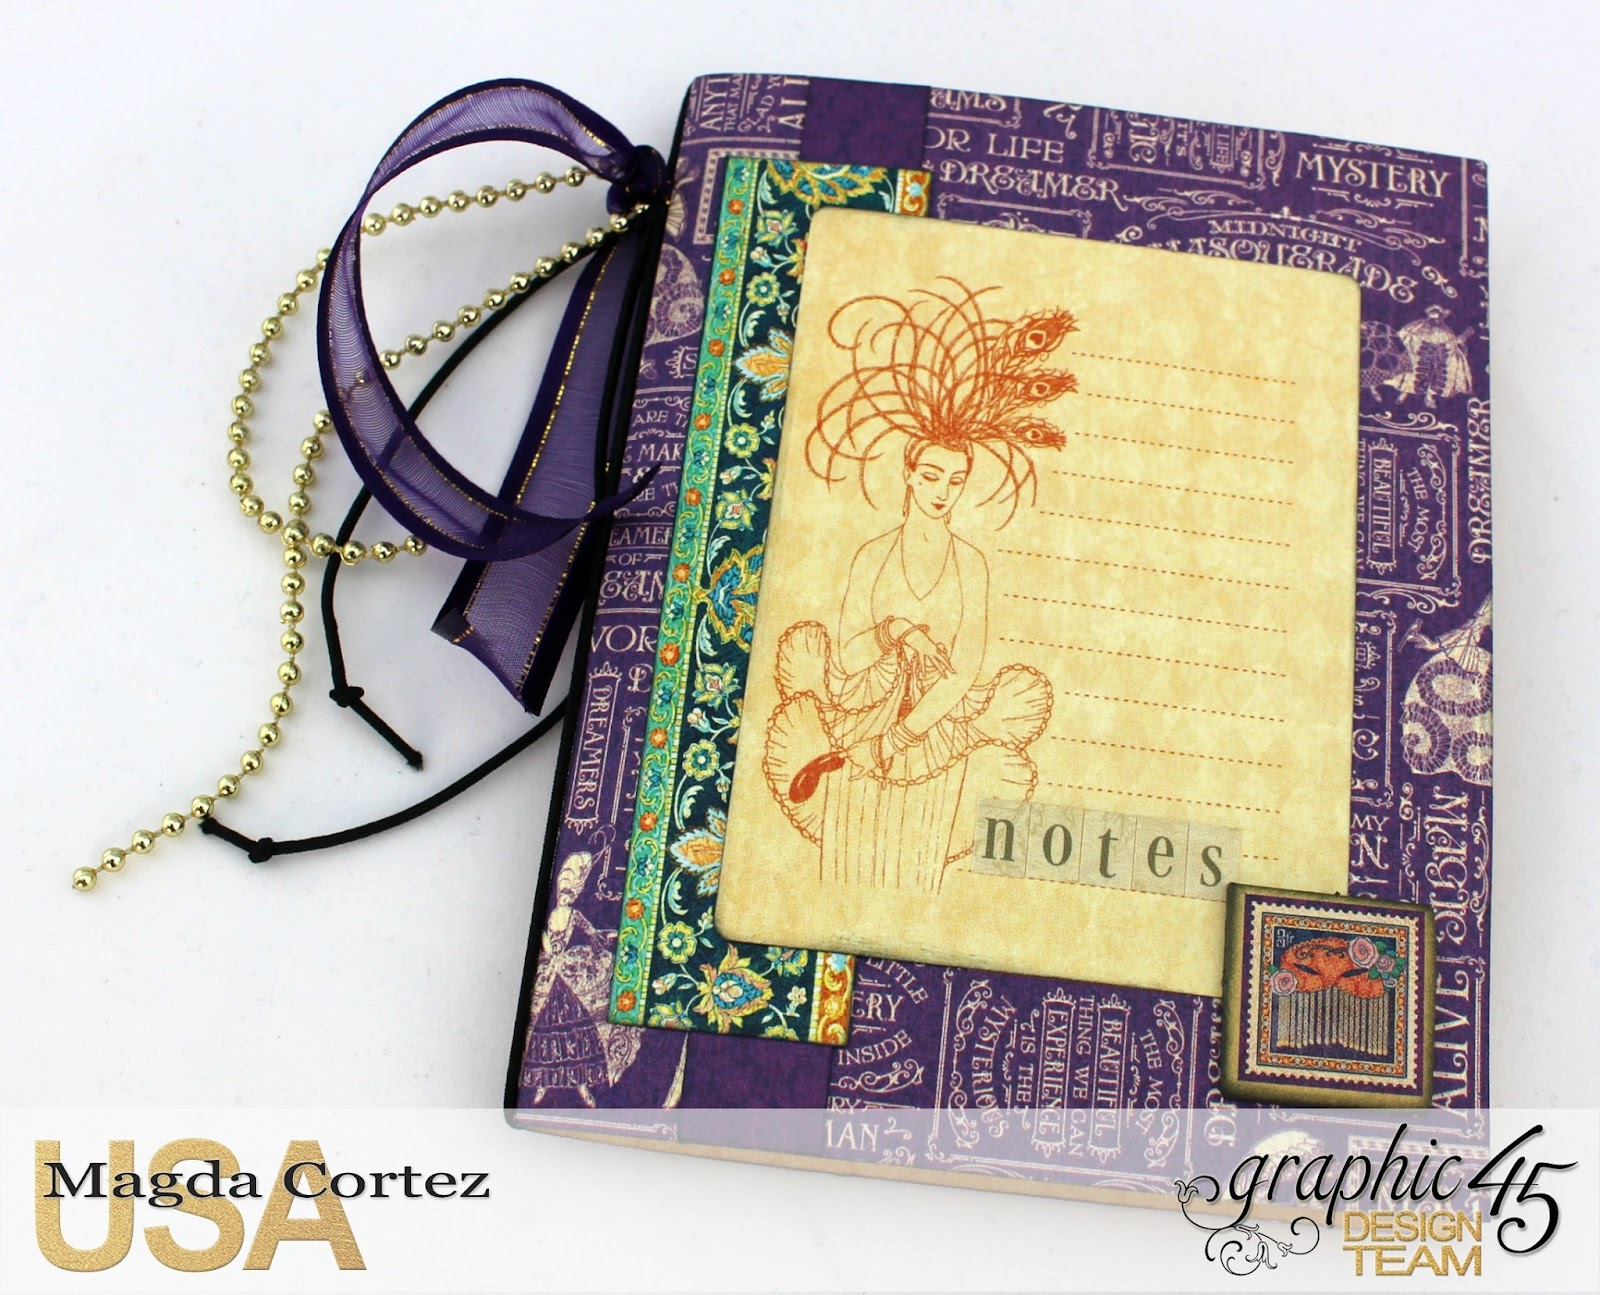 60 Second Tutorial Mini Notebooks, Midnight Masquerade, By Magda Cortez, Product by Graphic 45, Photo 02 of 07, with Tutorial.jpg